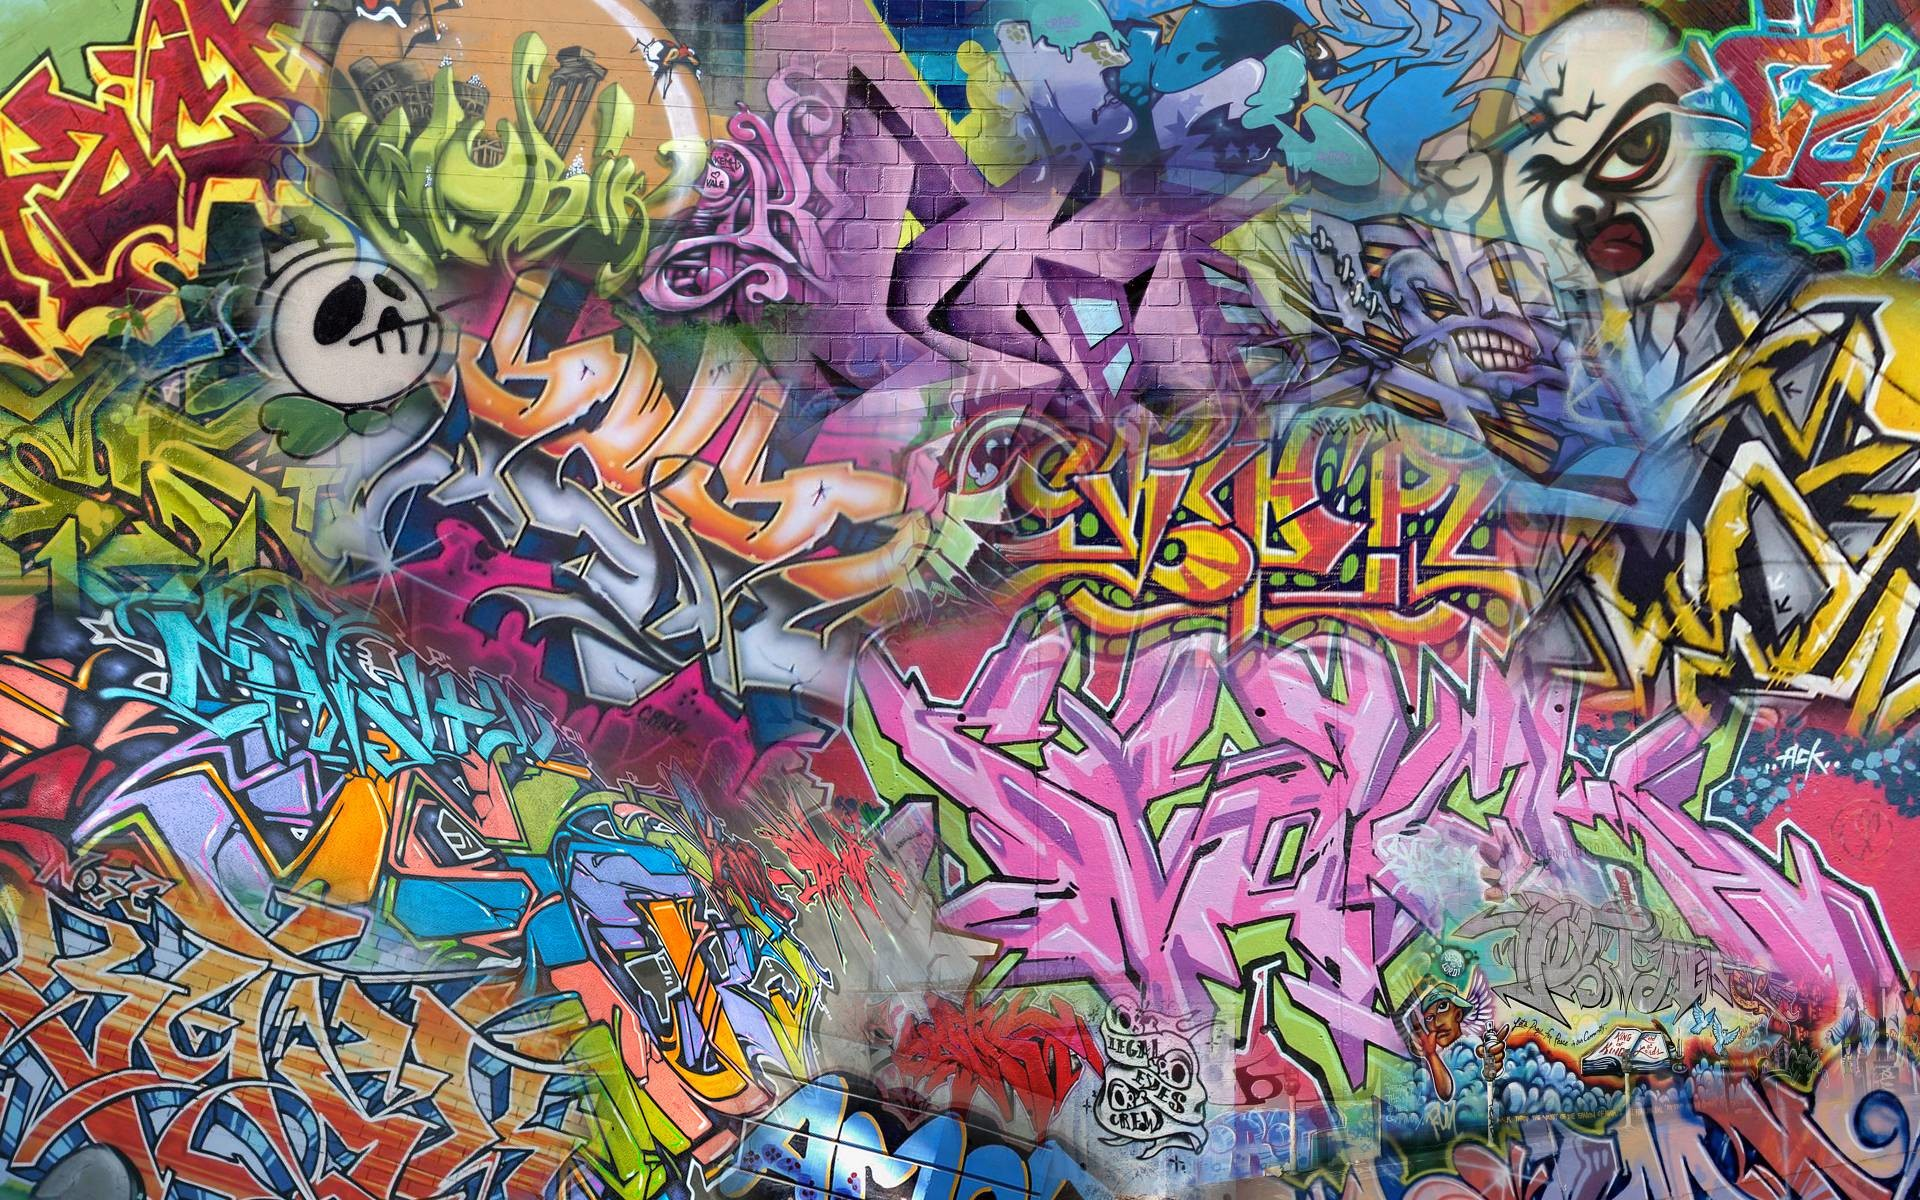 Abstract Graffiti Wallpaper 65 Images